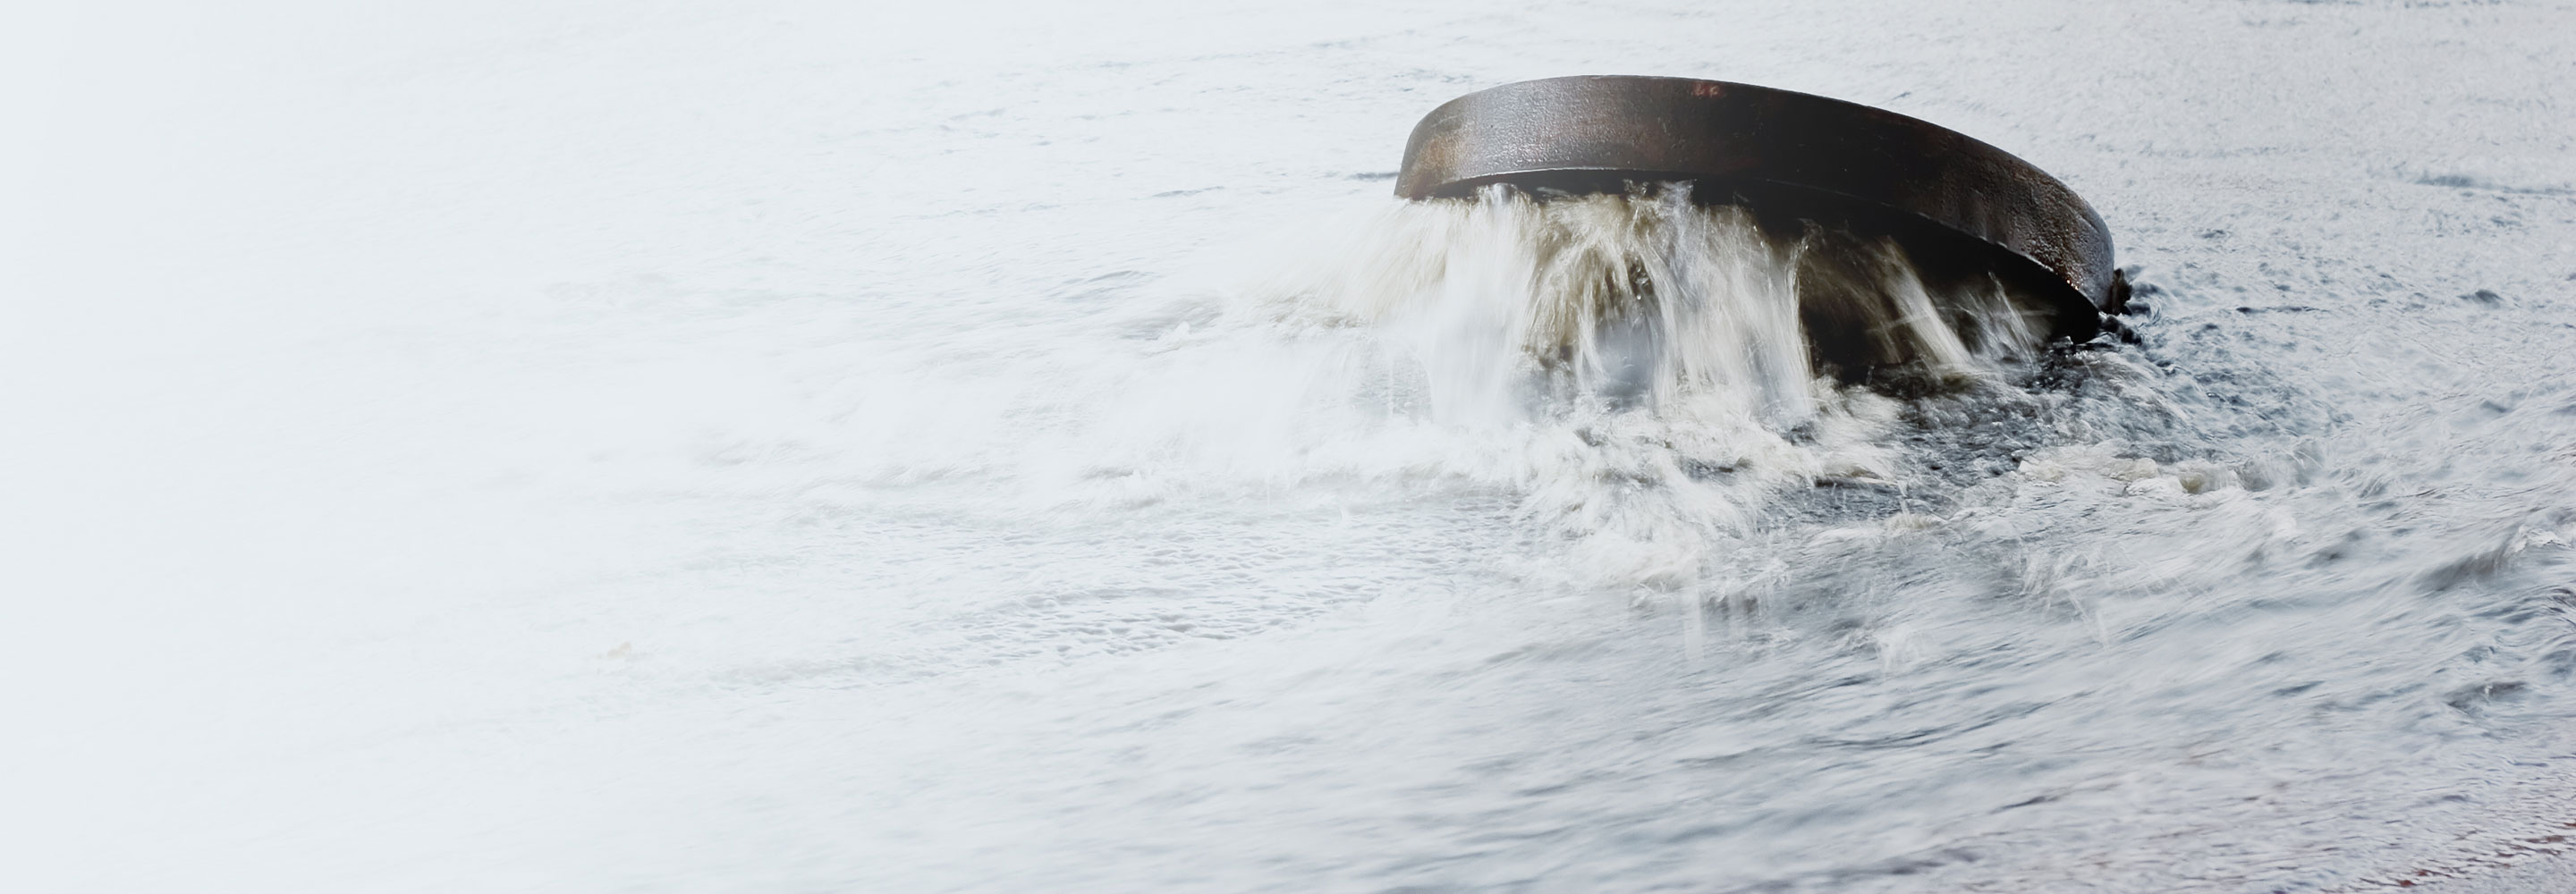 sewage-lid-open-with-rushing-water-around